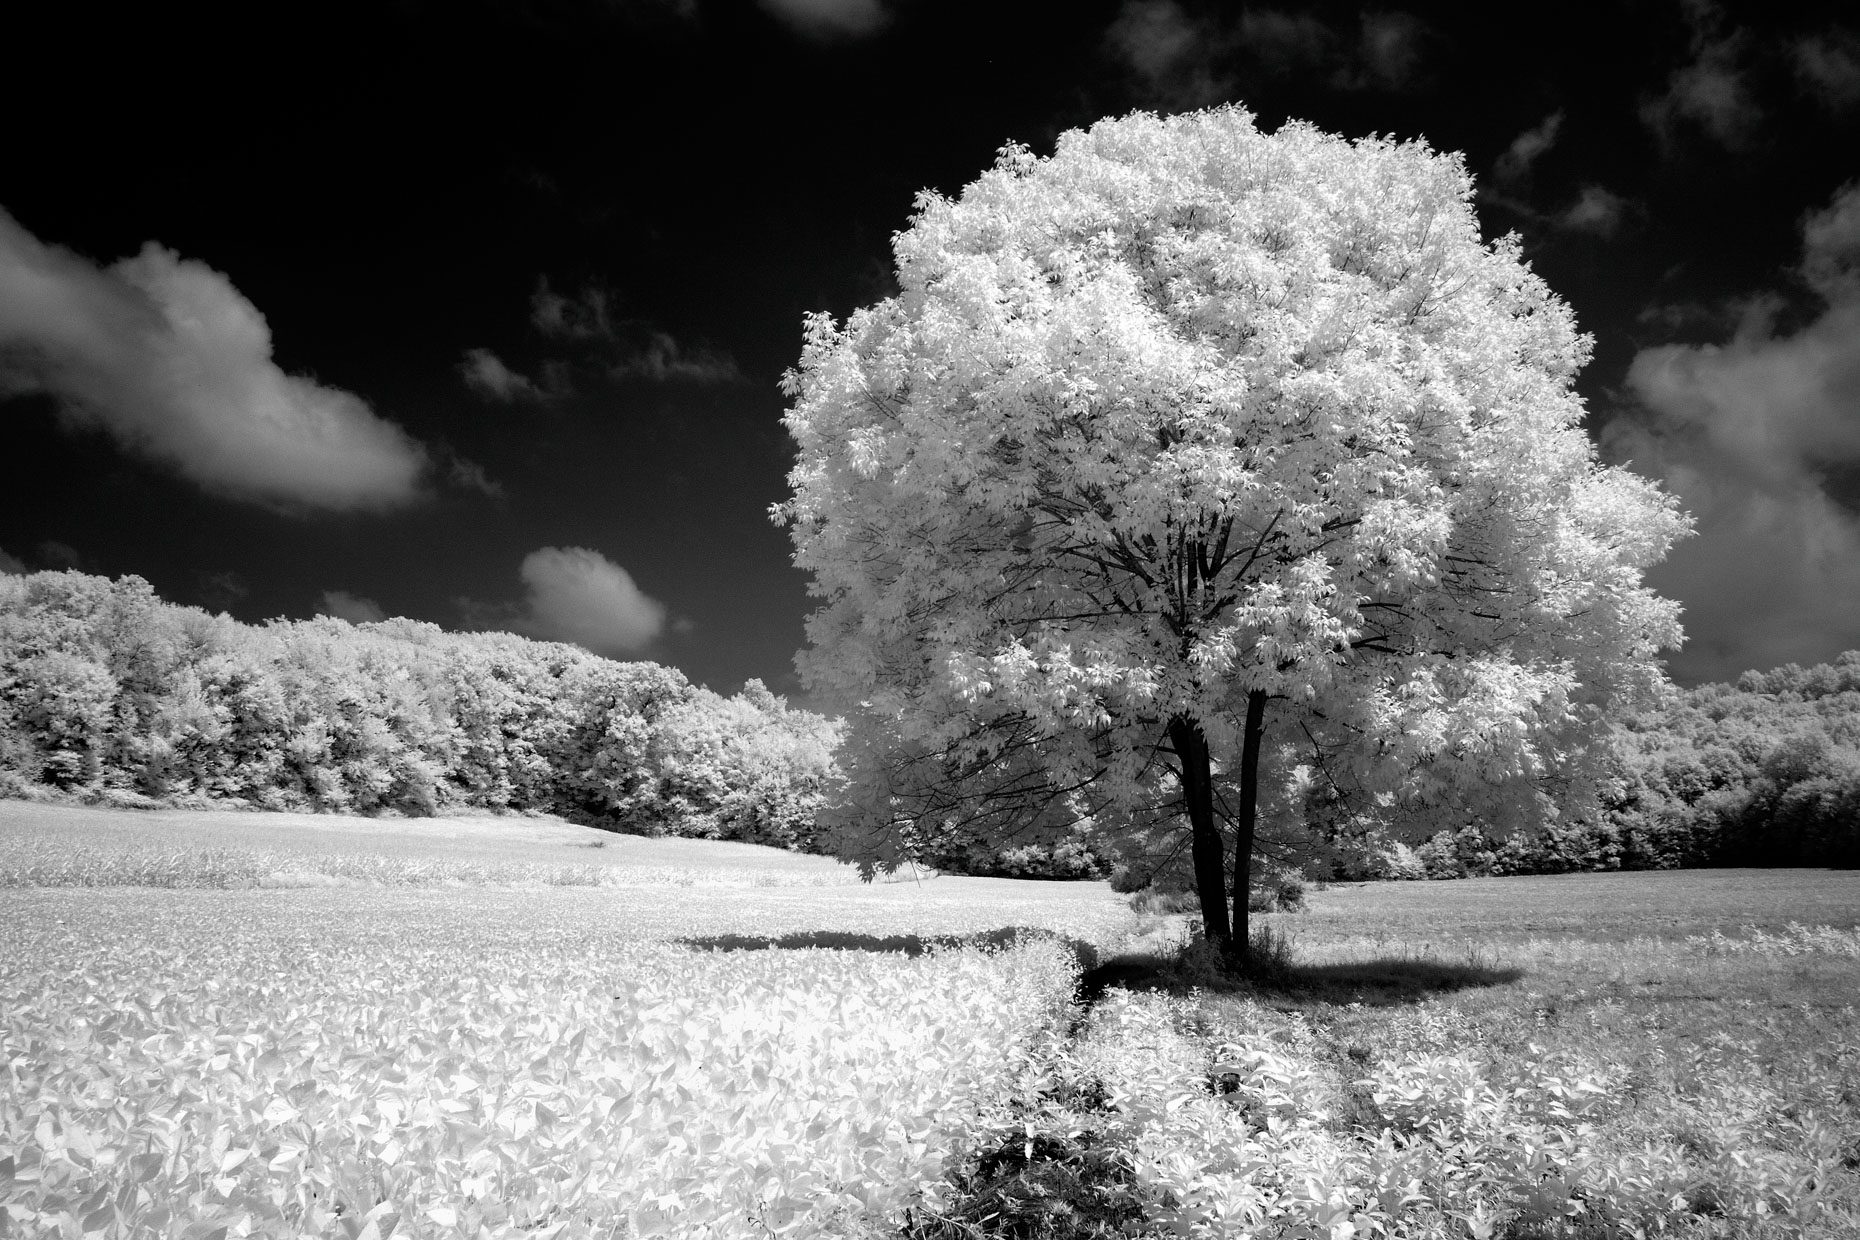 Rural Farm - B&W Infrared (Western PA)